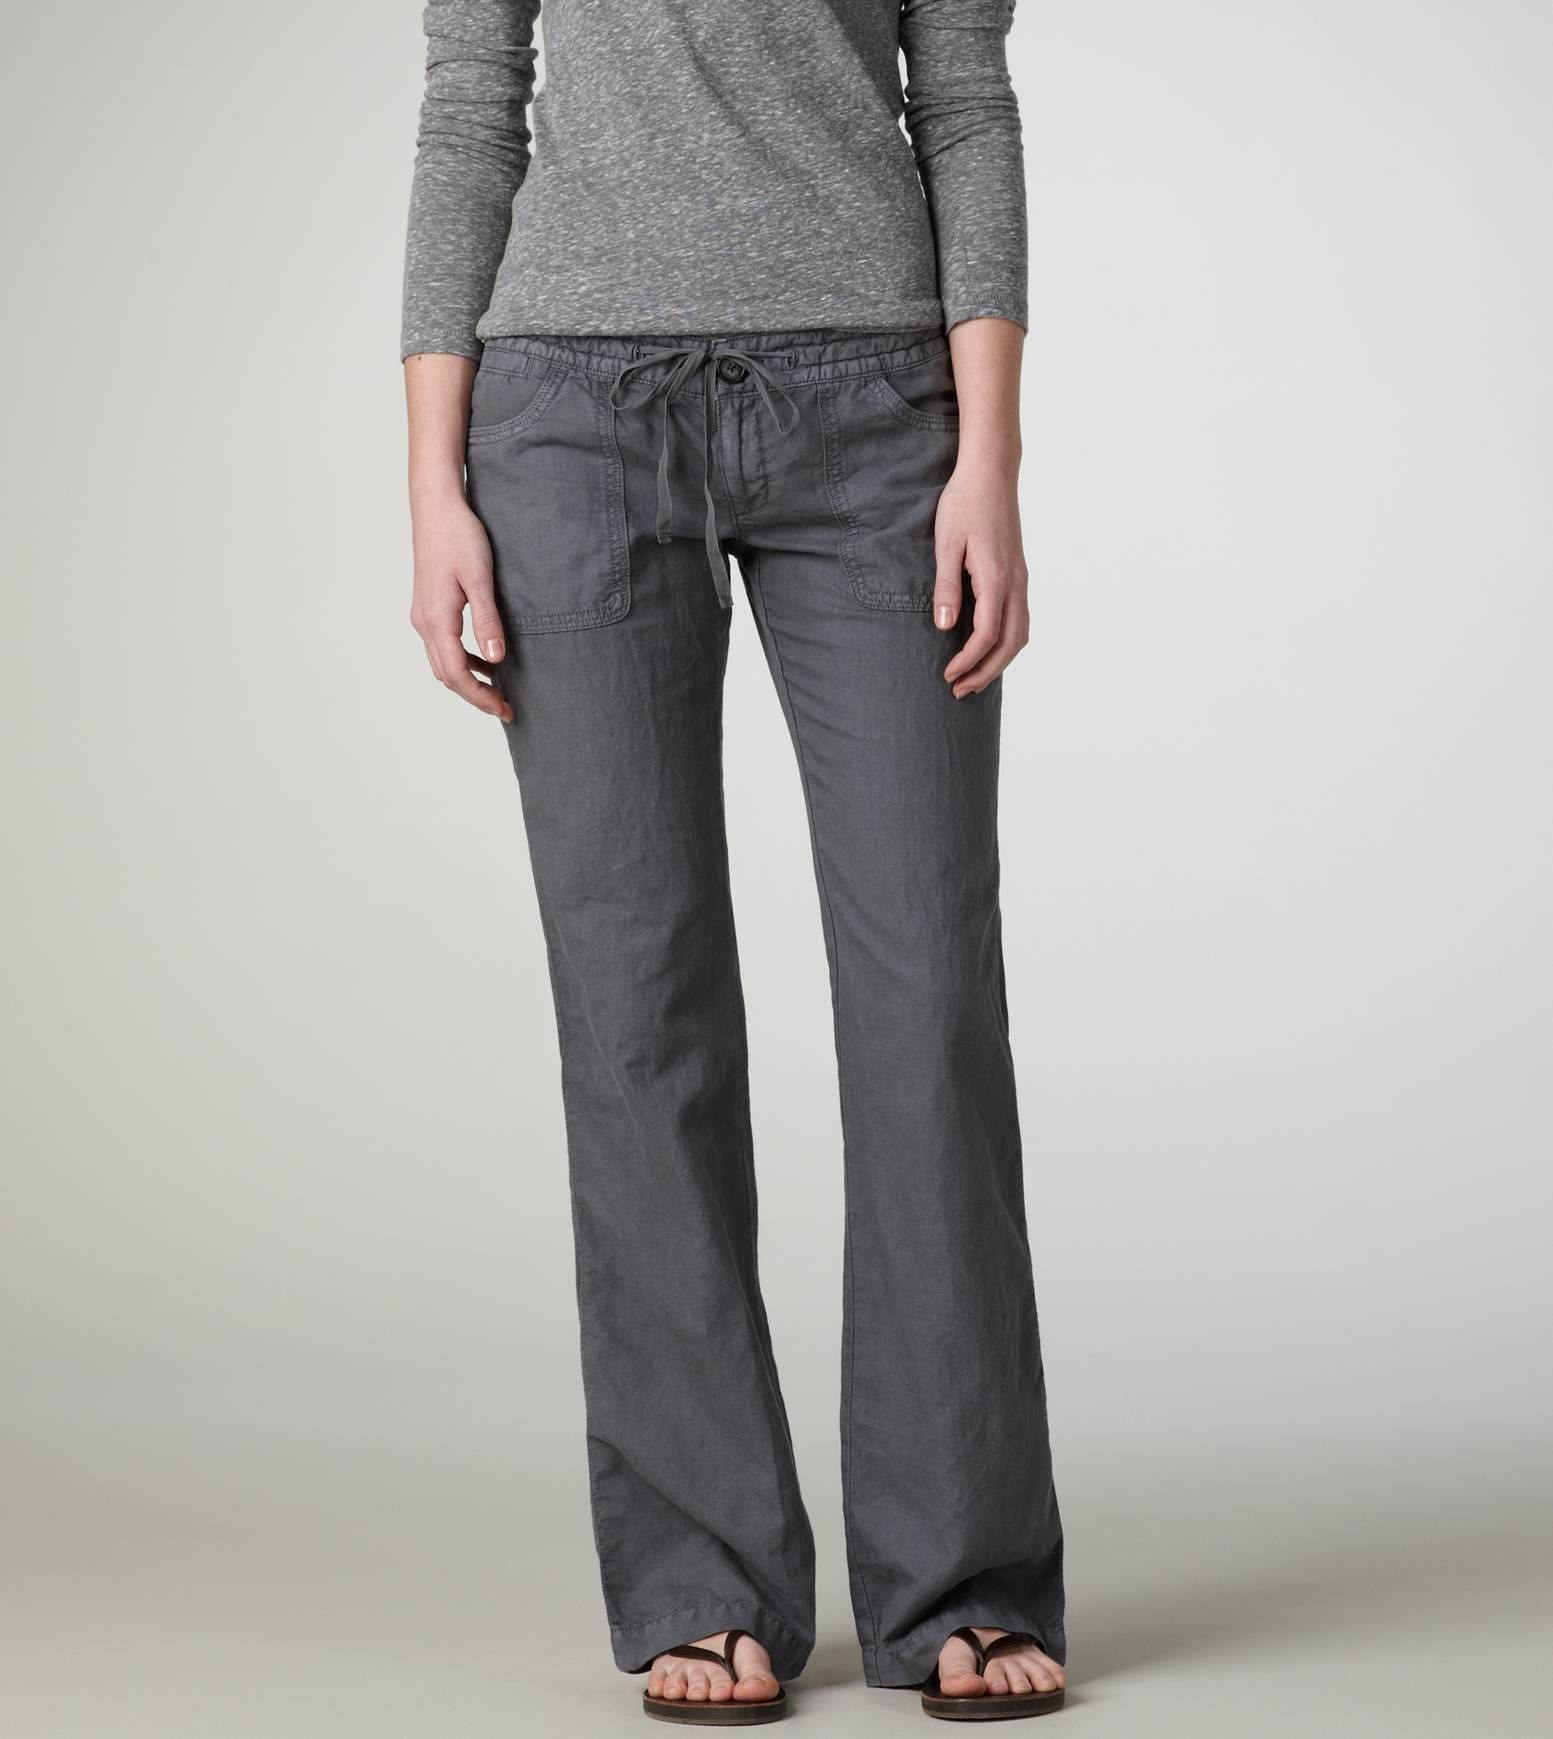 Camel Relaxed Linen Pants - Women's Resort Wear | Island Company ...